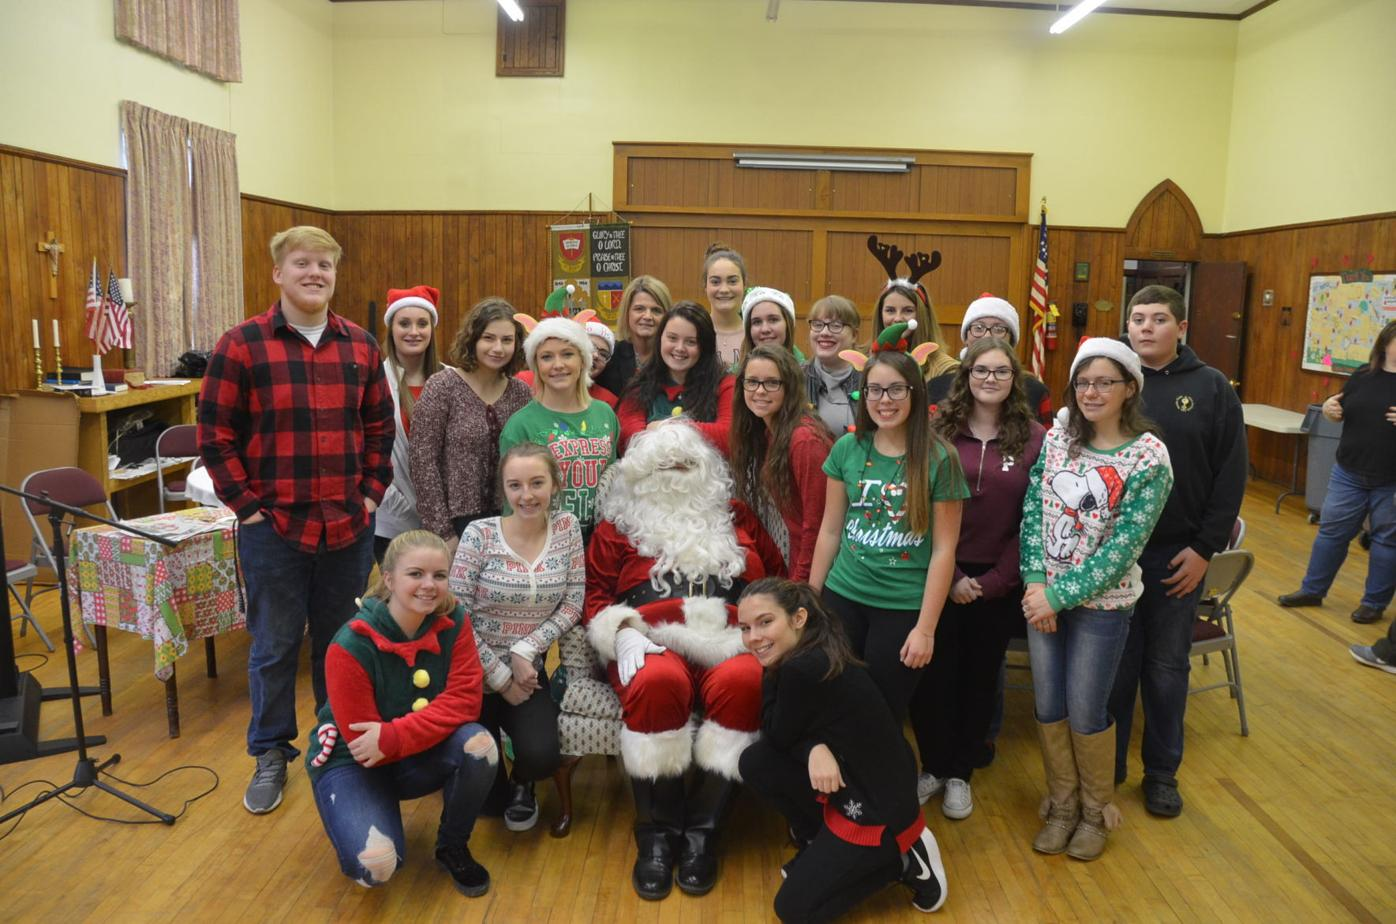 Weston Wv Christmas Activities 2020 Lewis County High School Interact club continues making community